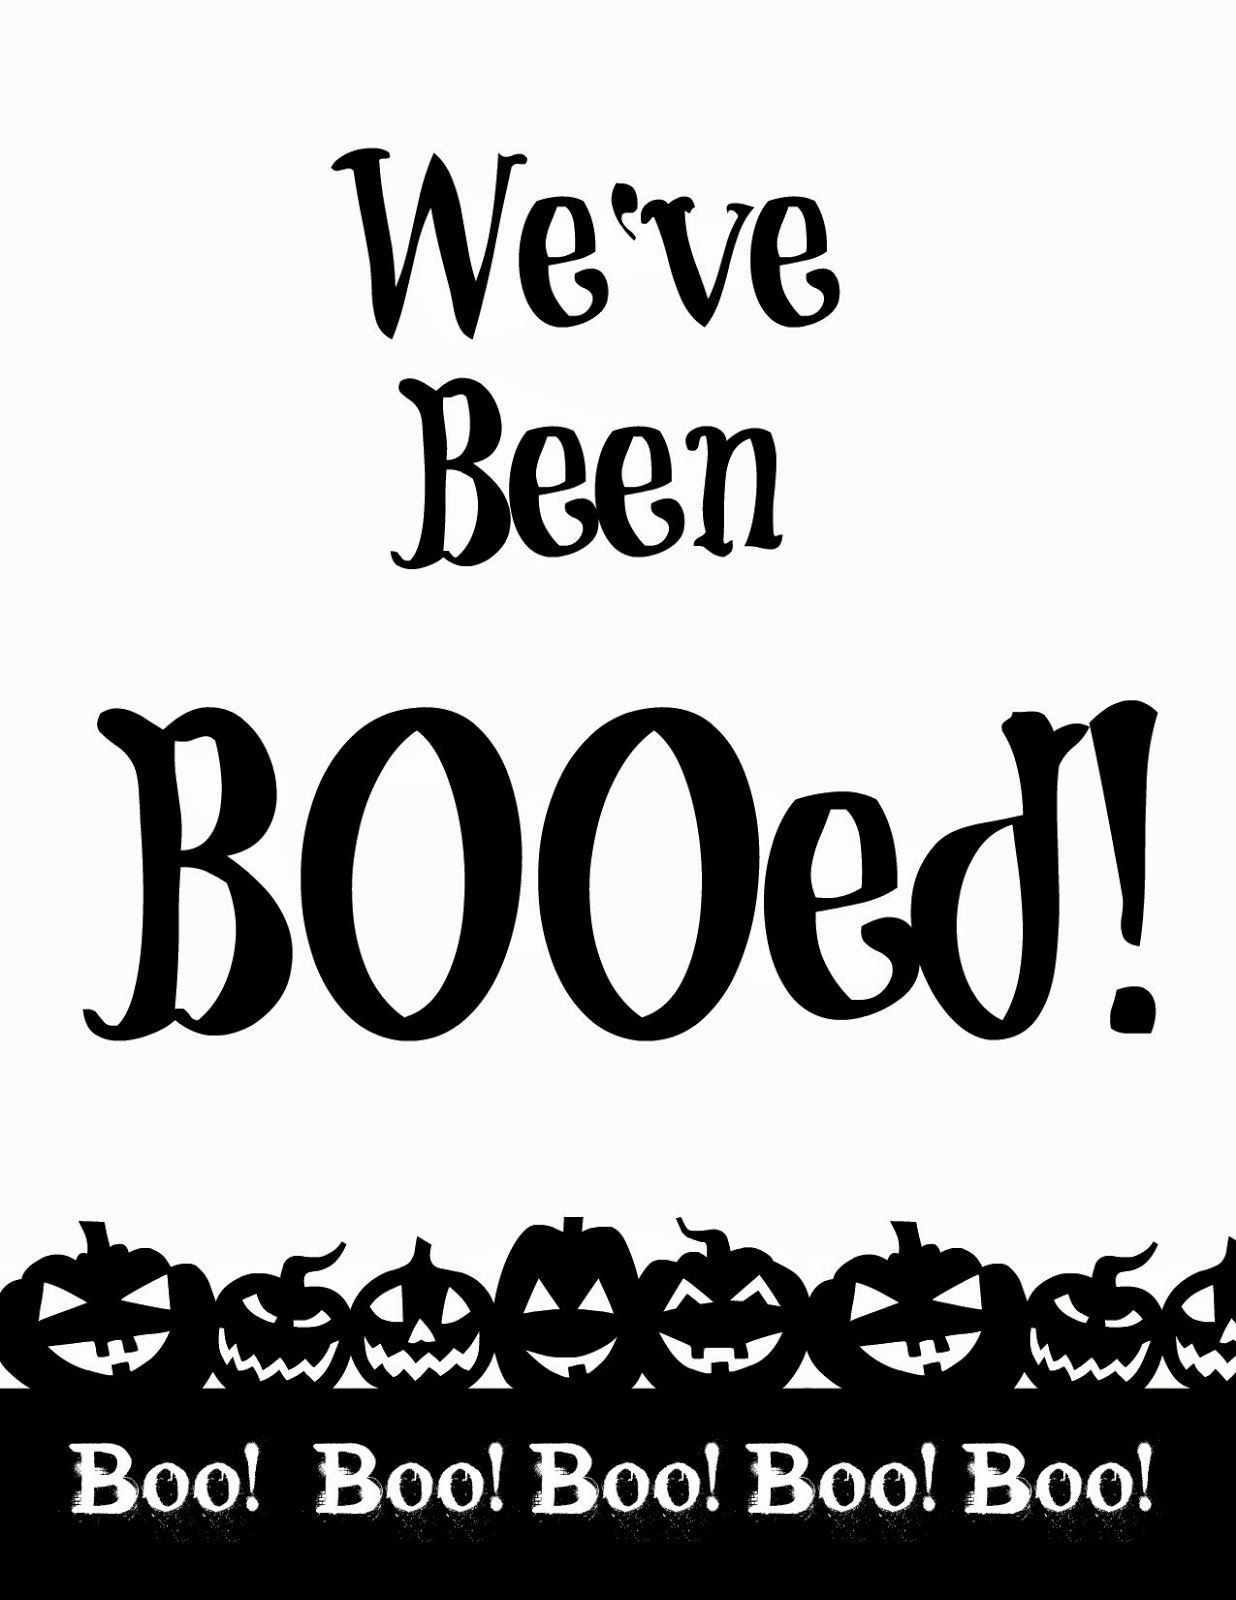 You Ve Been Booed